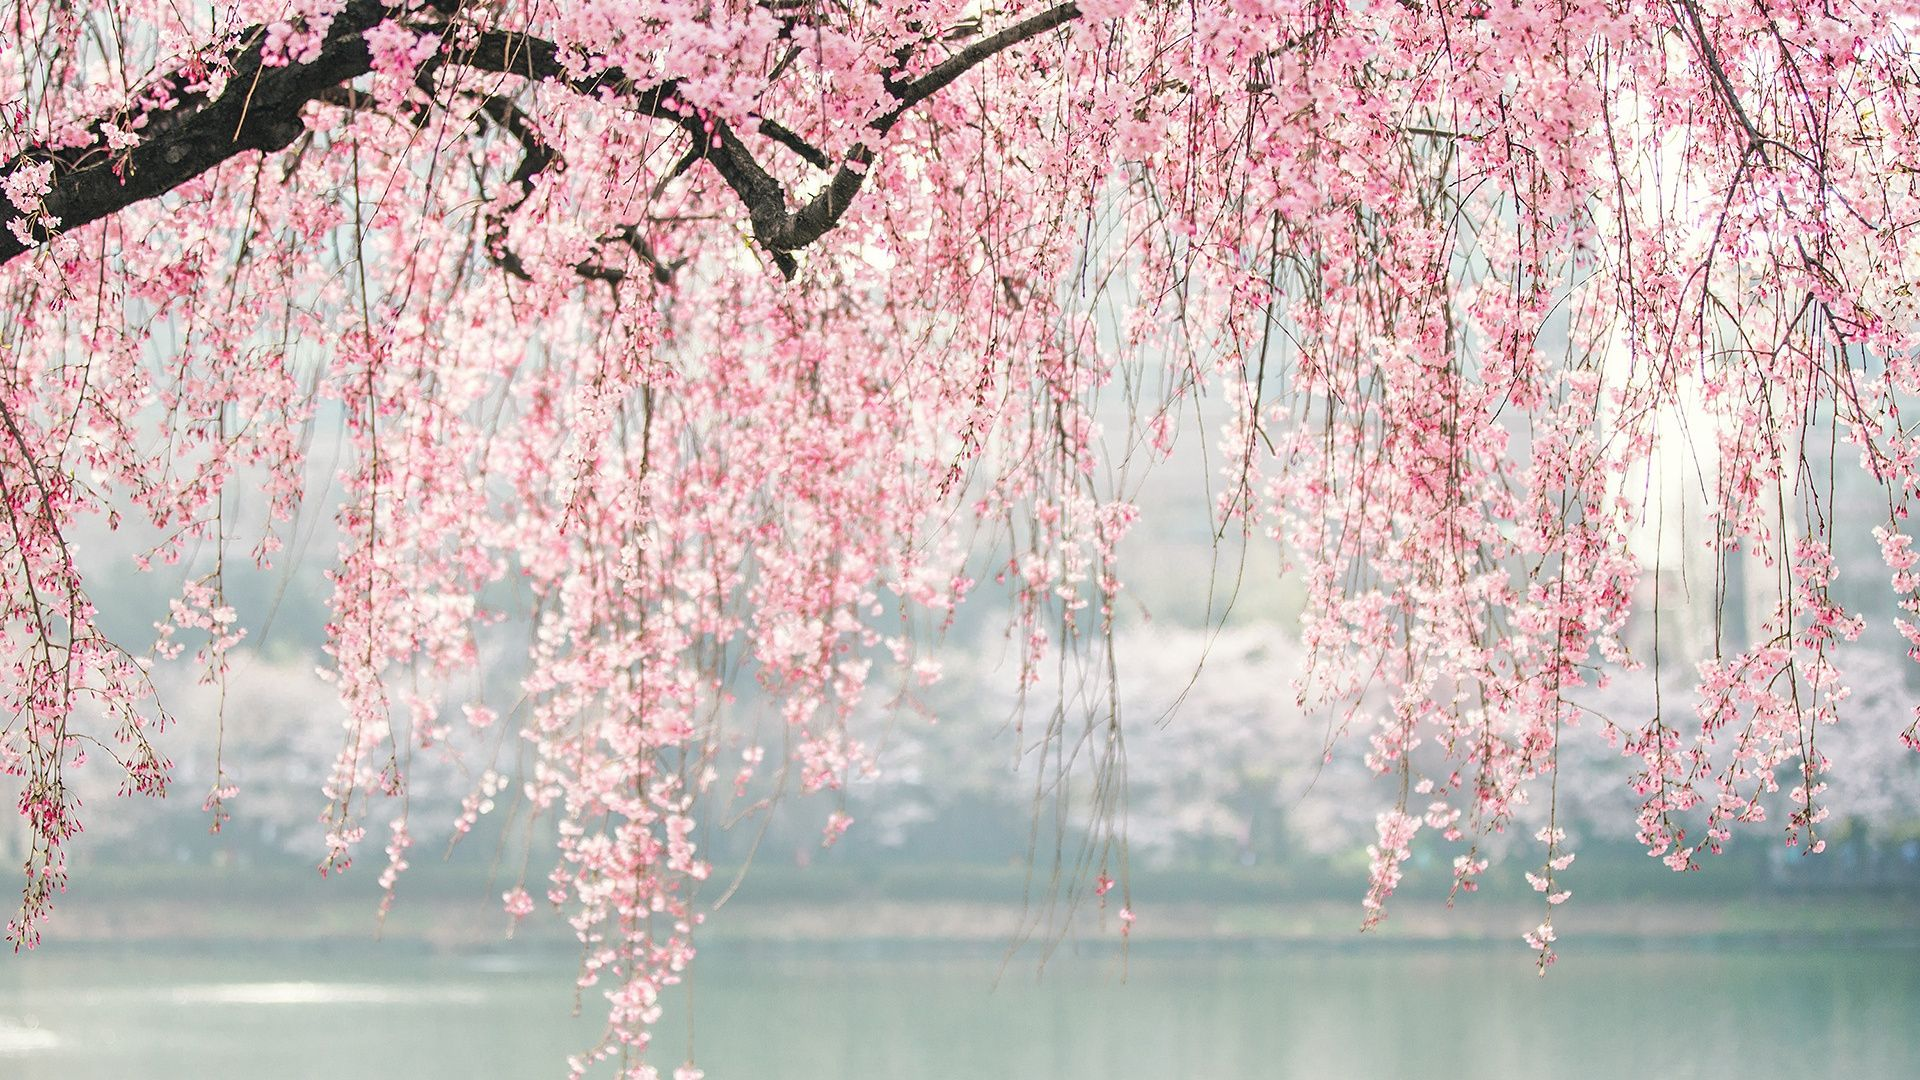 Download 1920x1080 Wallpaper Japan, Cherry Blossom, Tree